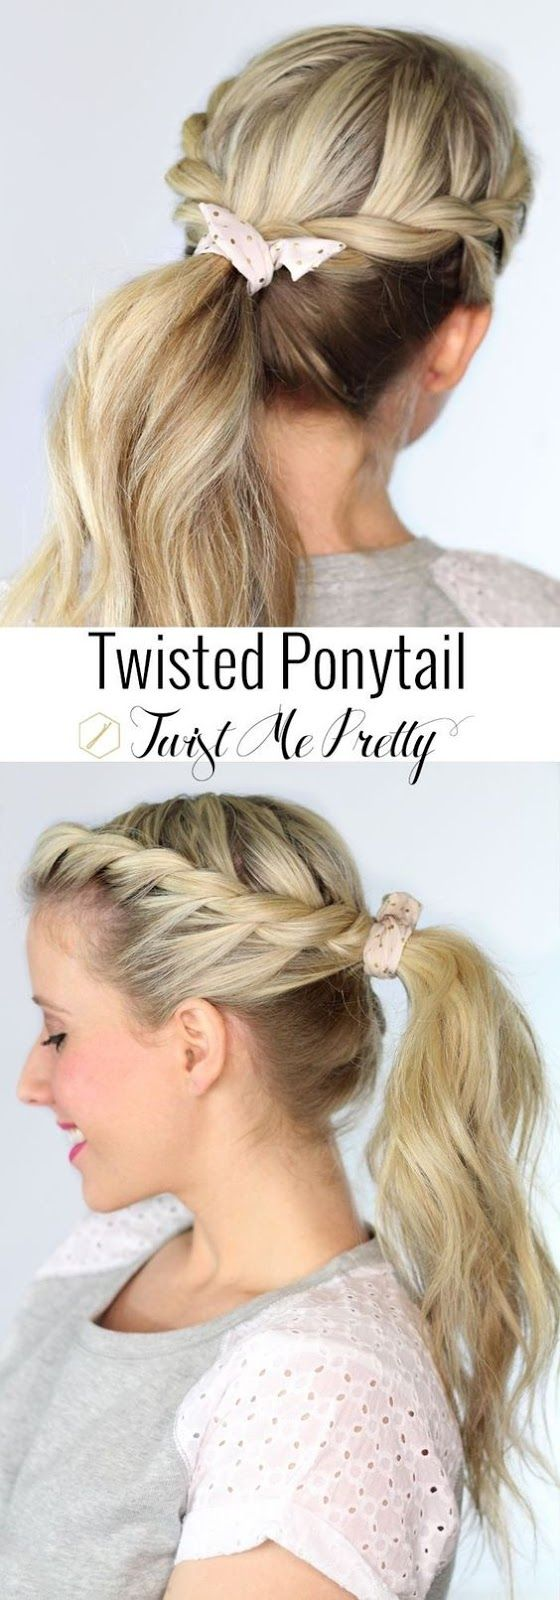 gorgeous hairstyles to try this fall in braid